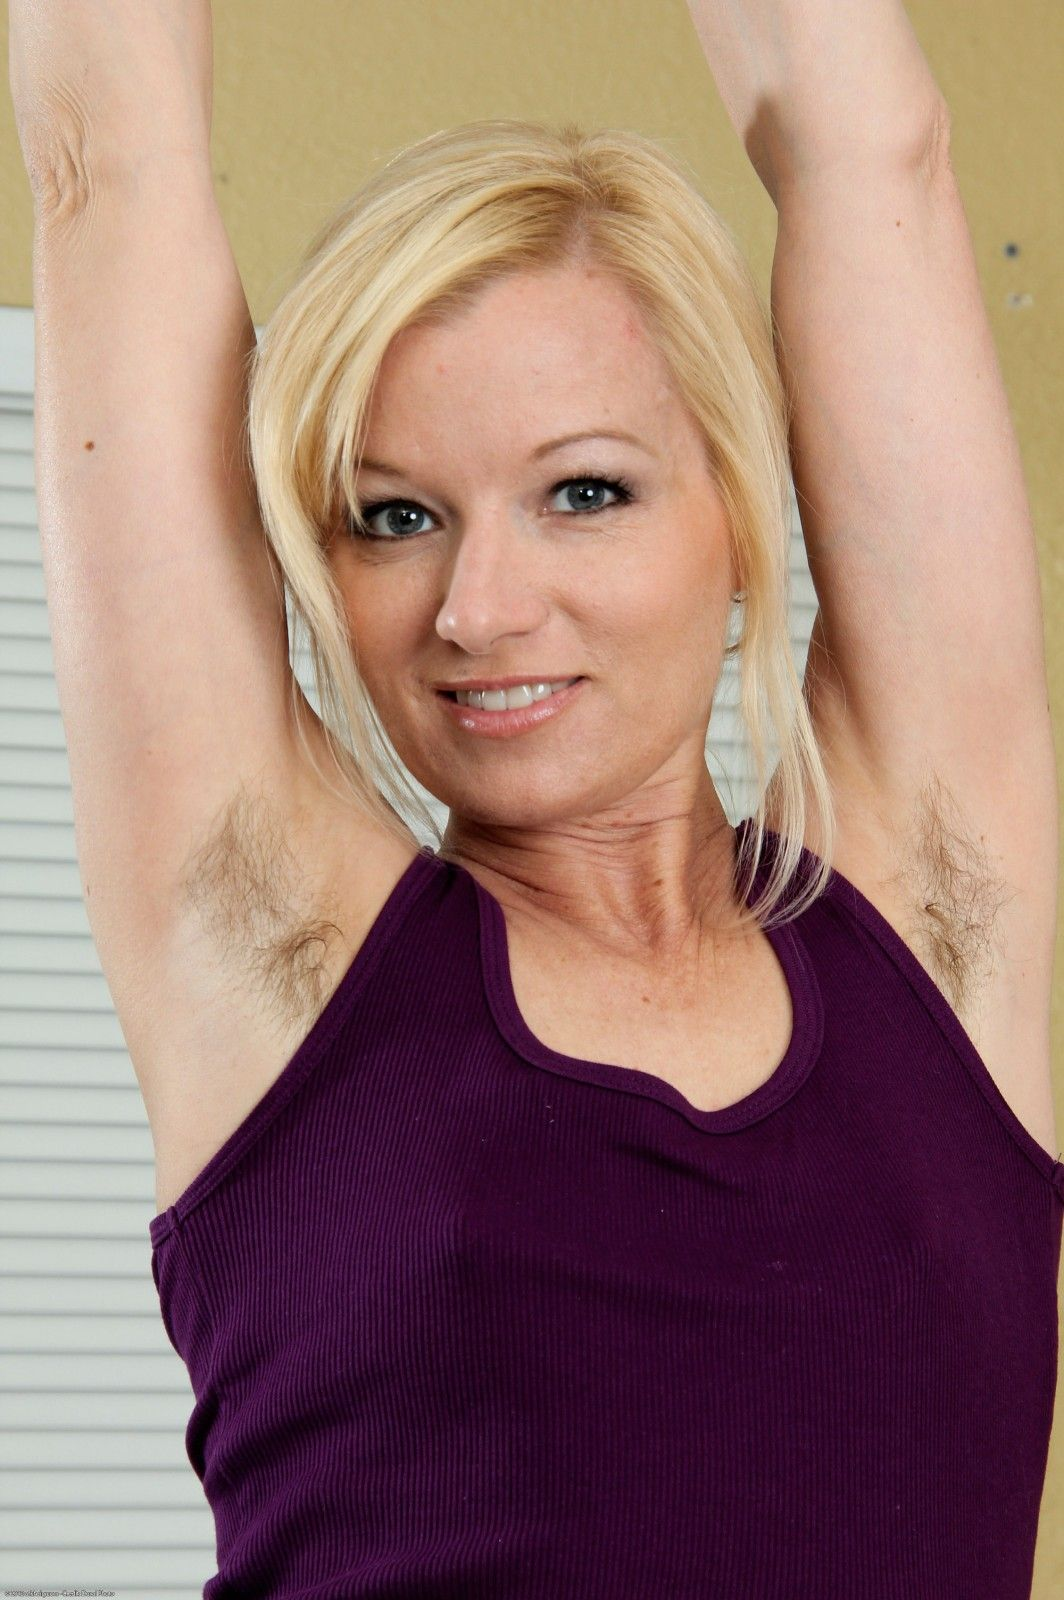 have Solo #73 Busty Thick Mature hey there